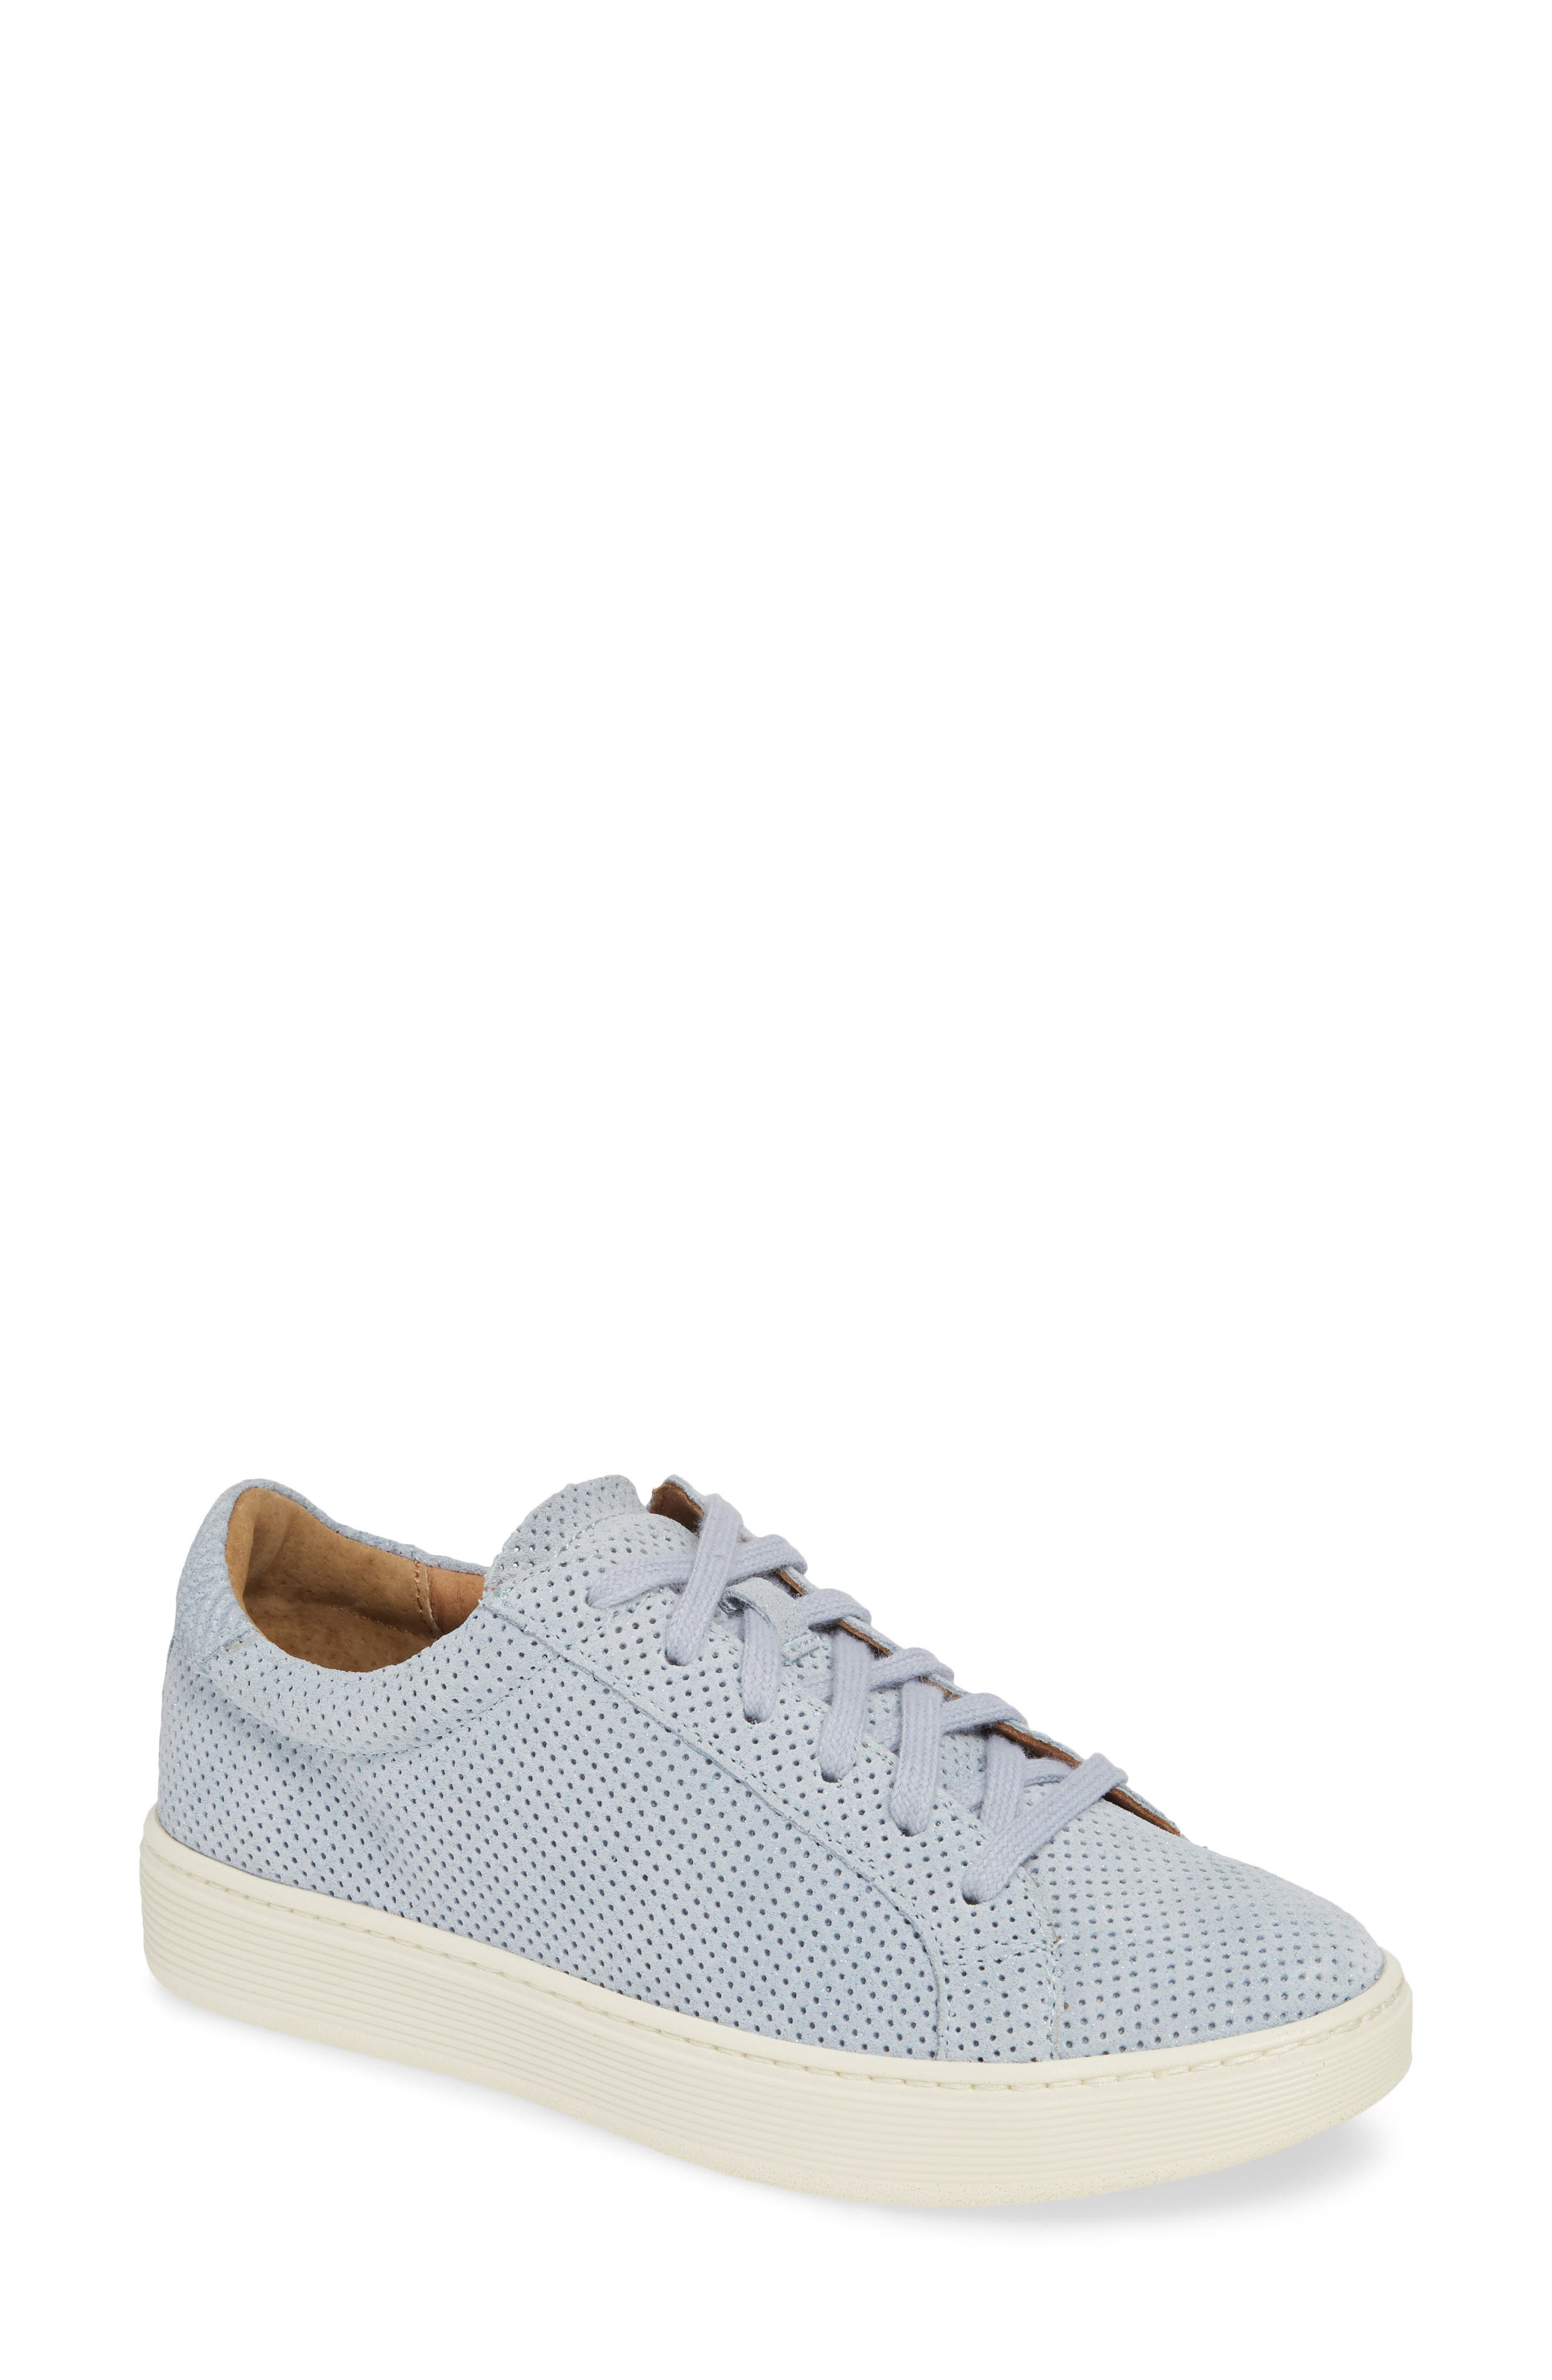 Sofft Somers Perforated Sneaker- Blue